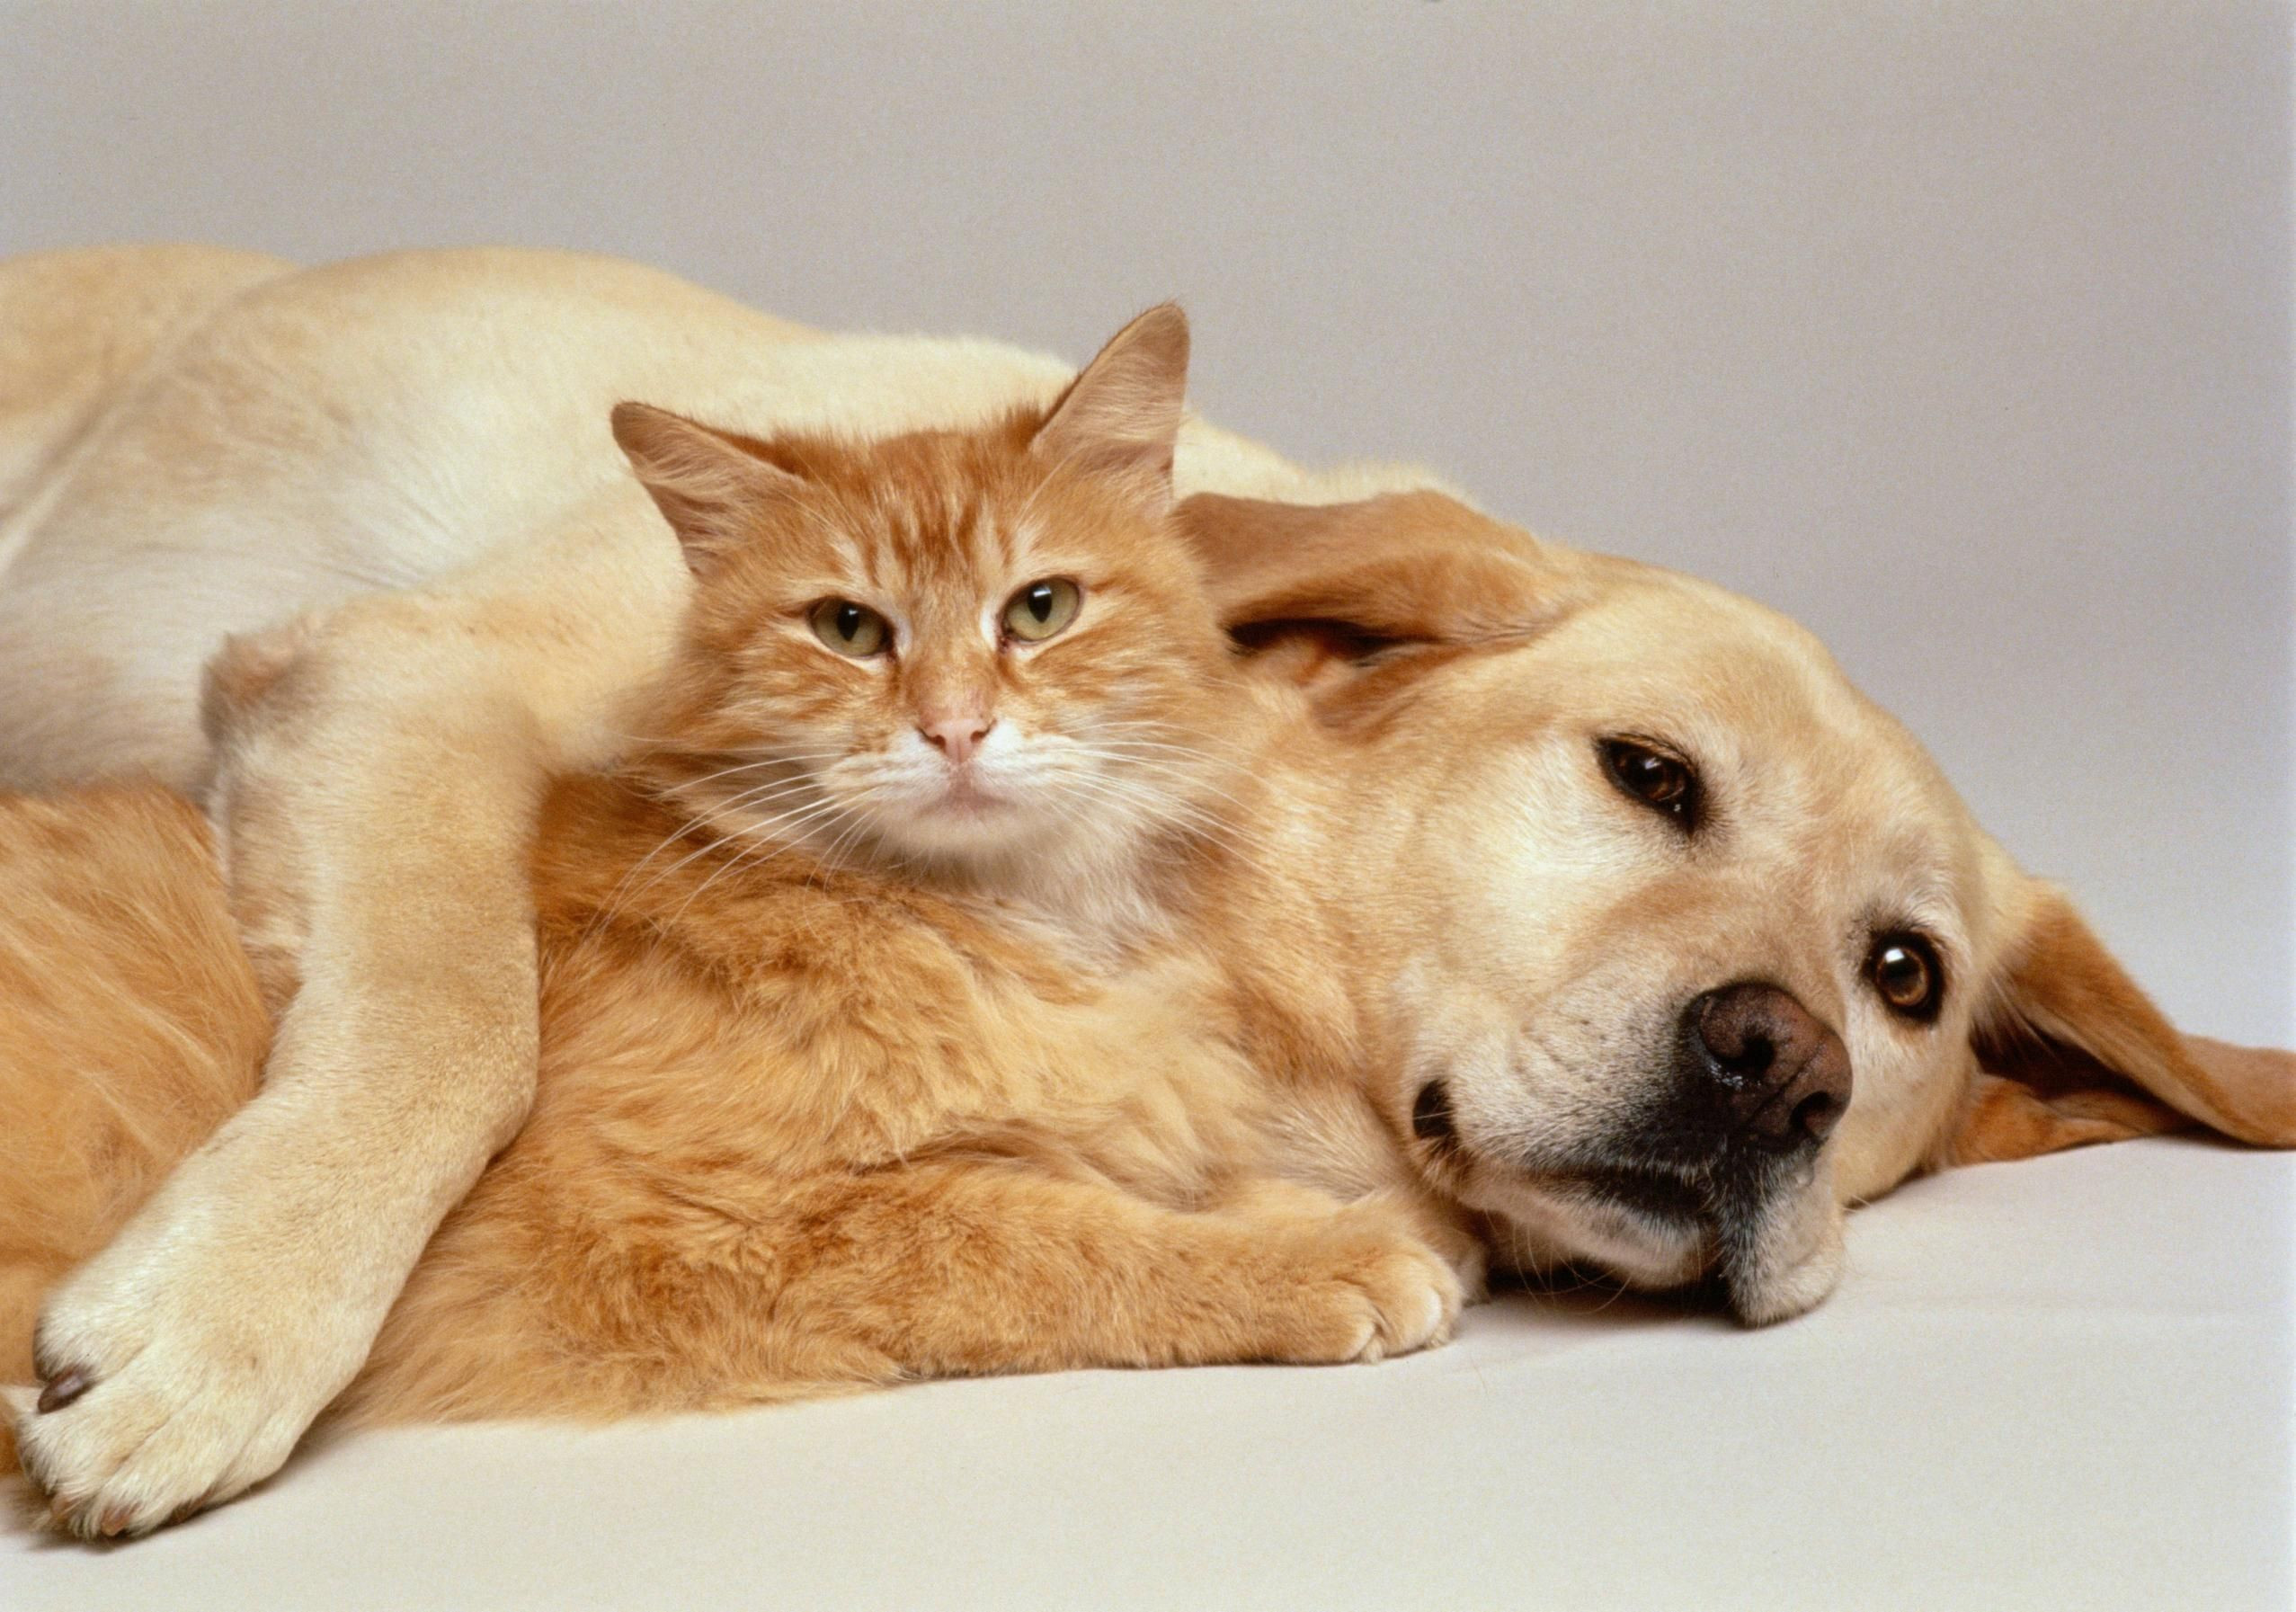 … Wallpaper Of Cute Cats And Dogs Cat And Dog Wallpapers – Wallpaper Cave